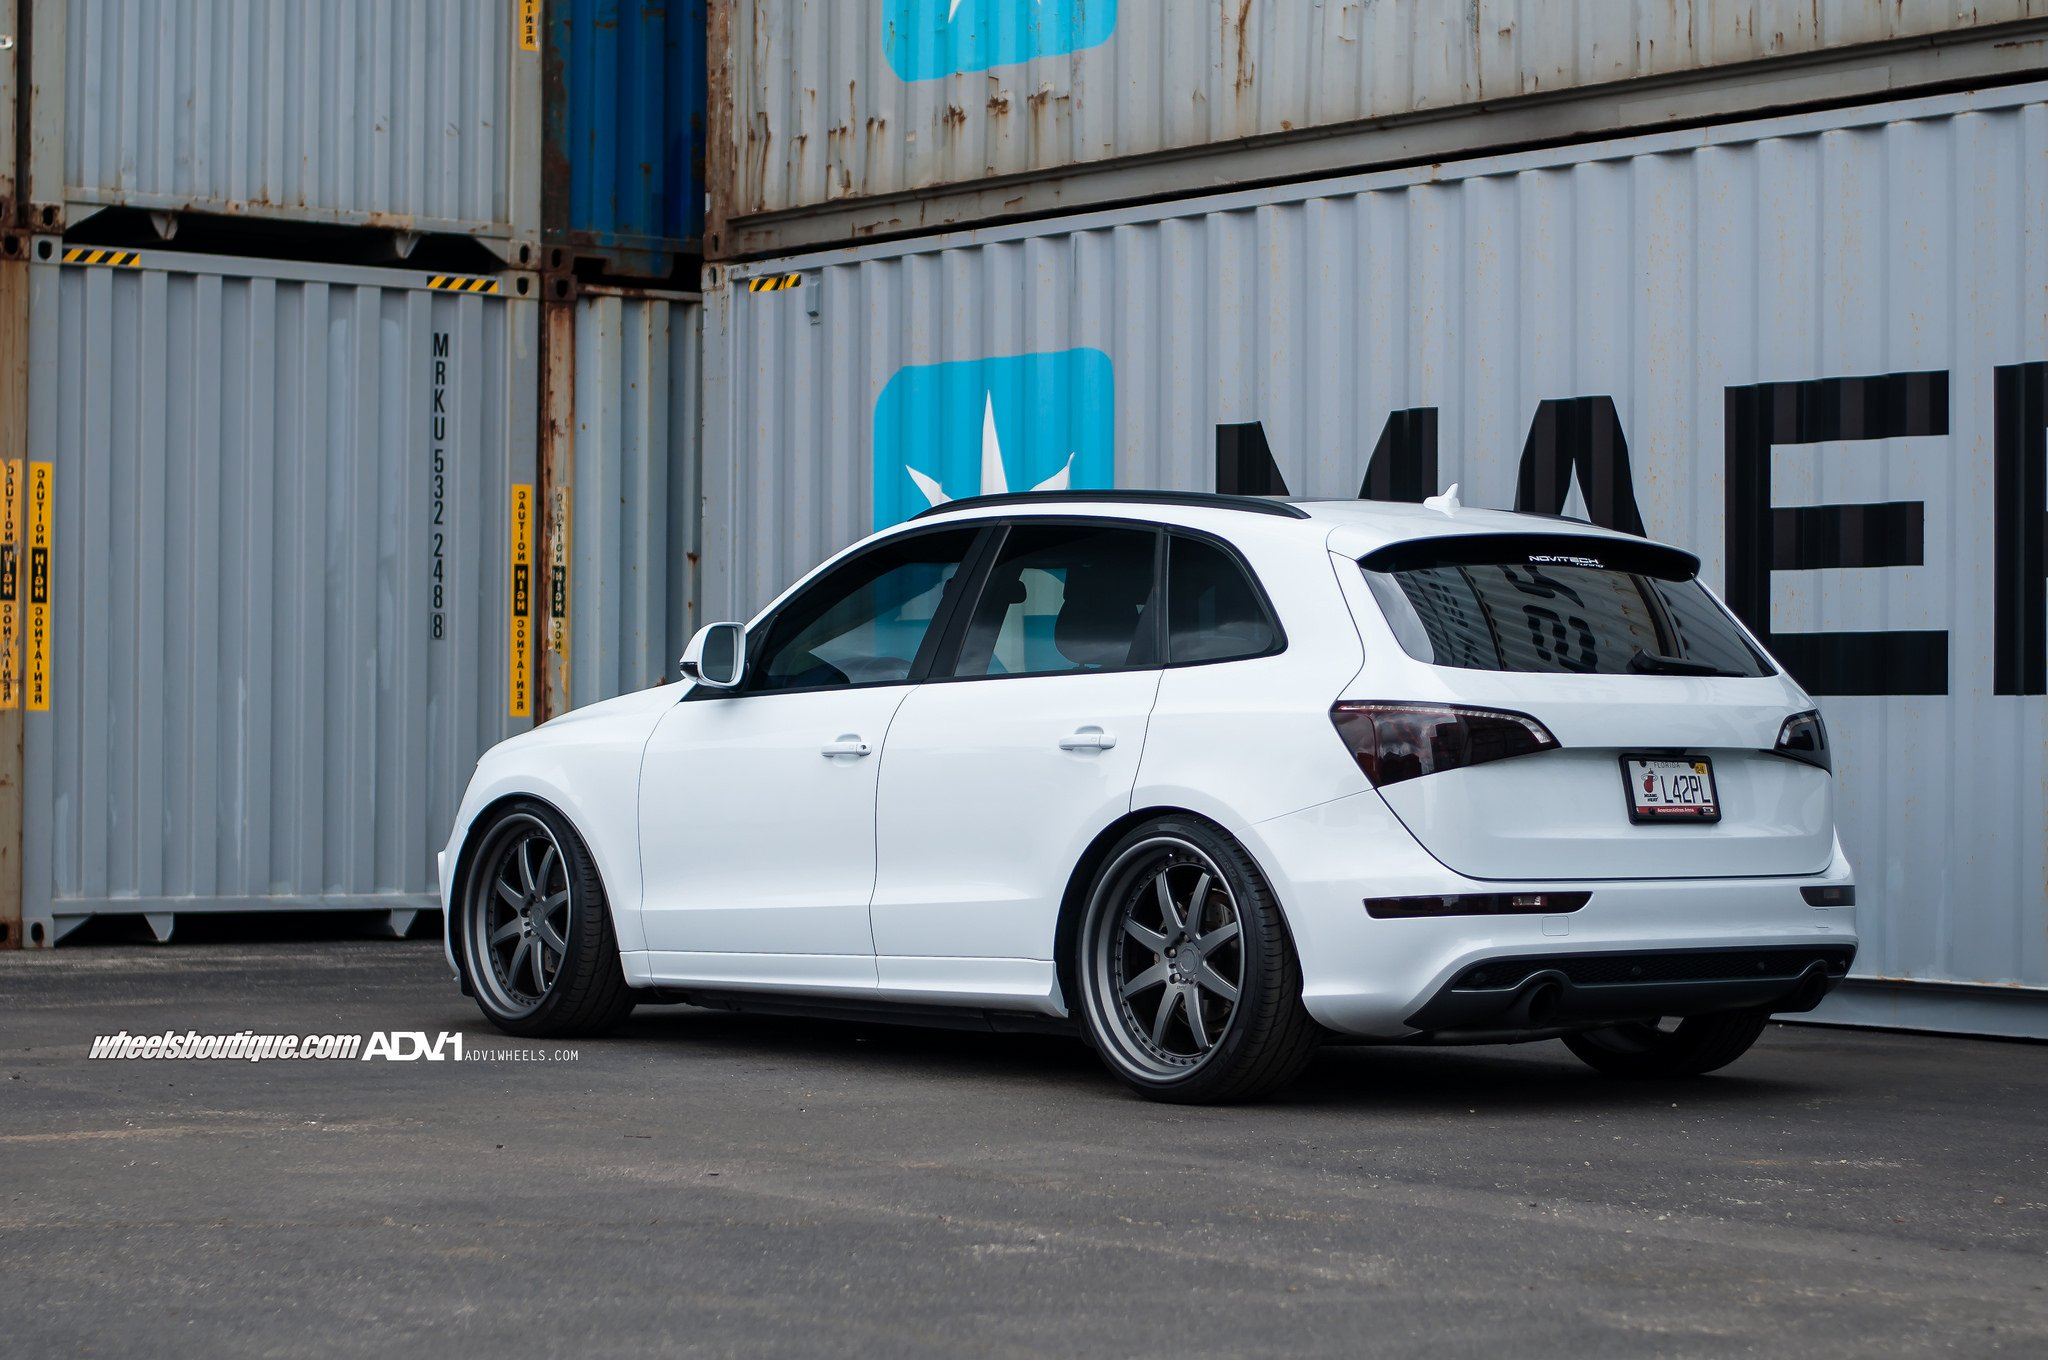 Adv 1 Wheels Audi Q5 Suv Cars Tuning Wallpaper 2048x1360